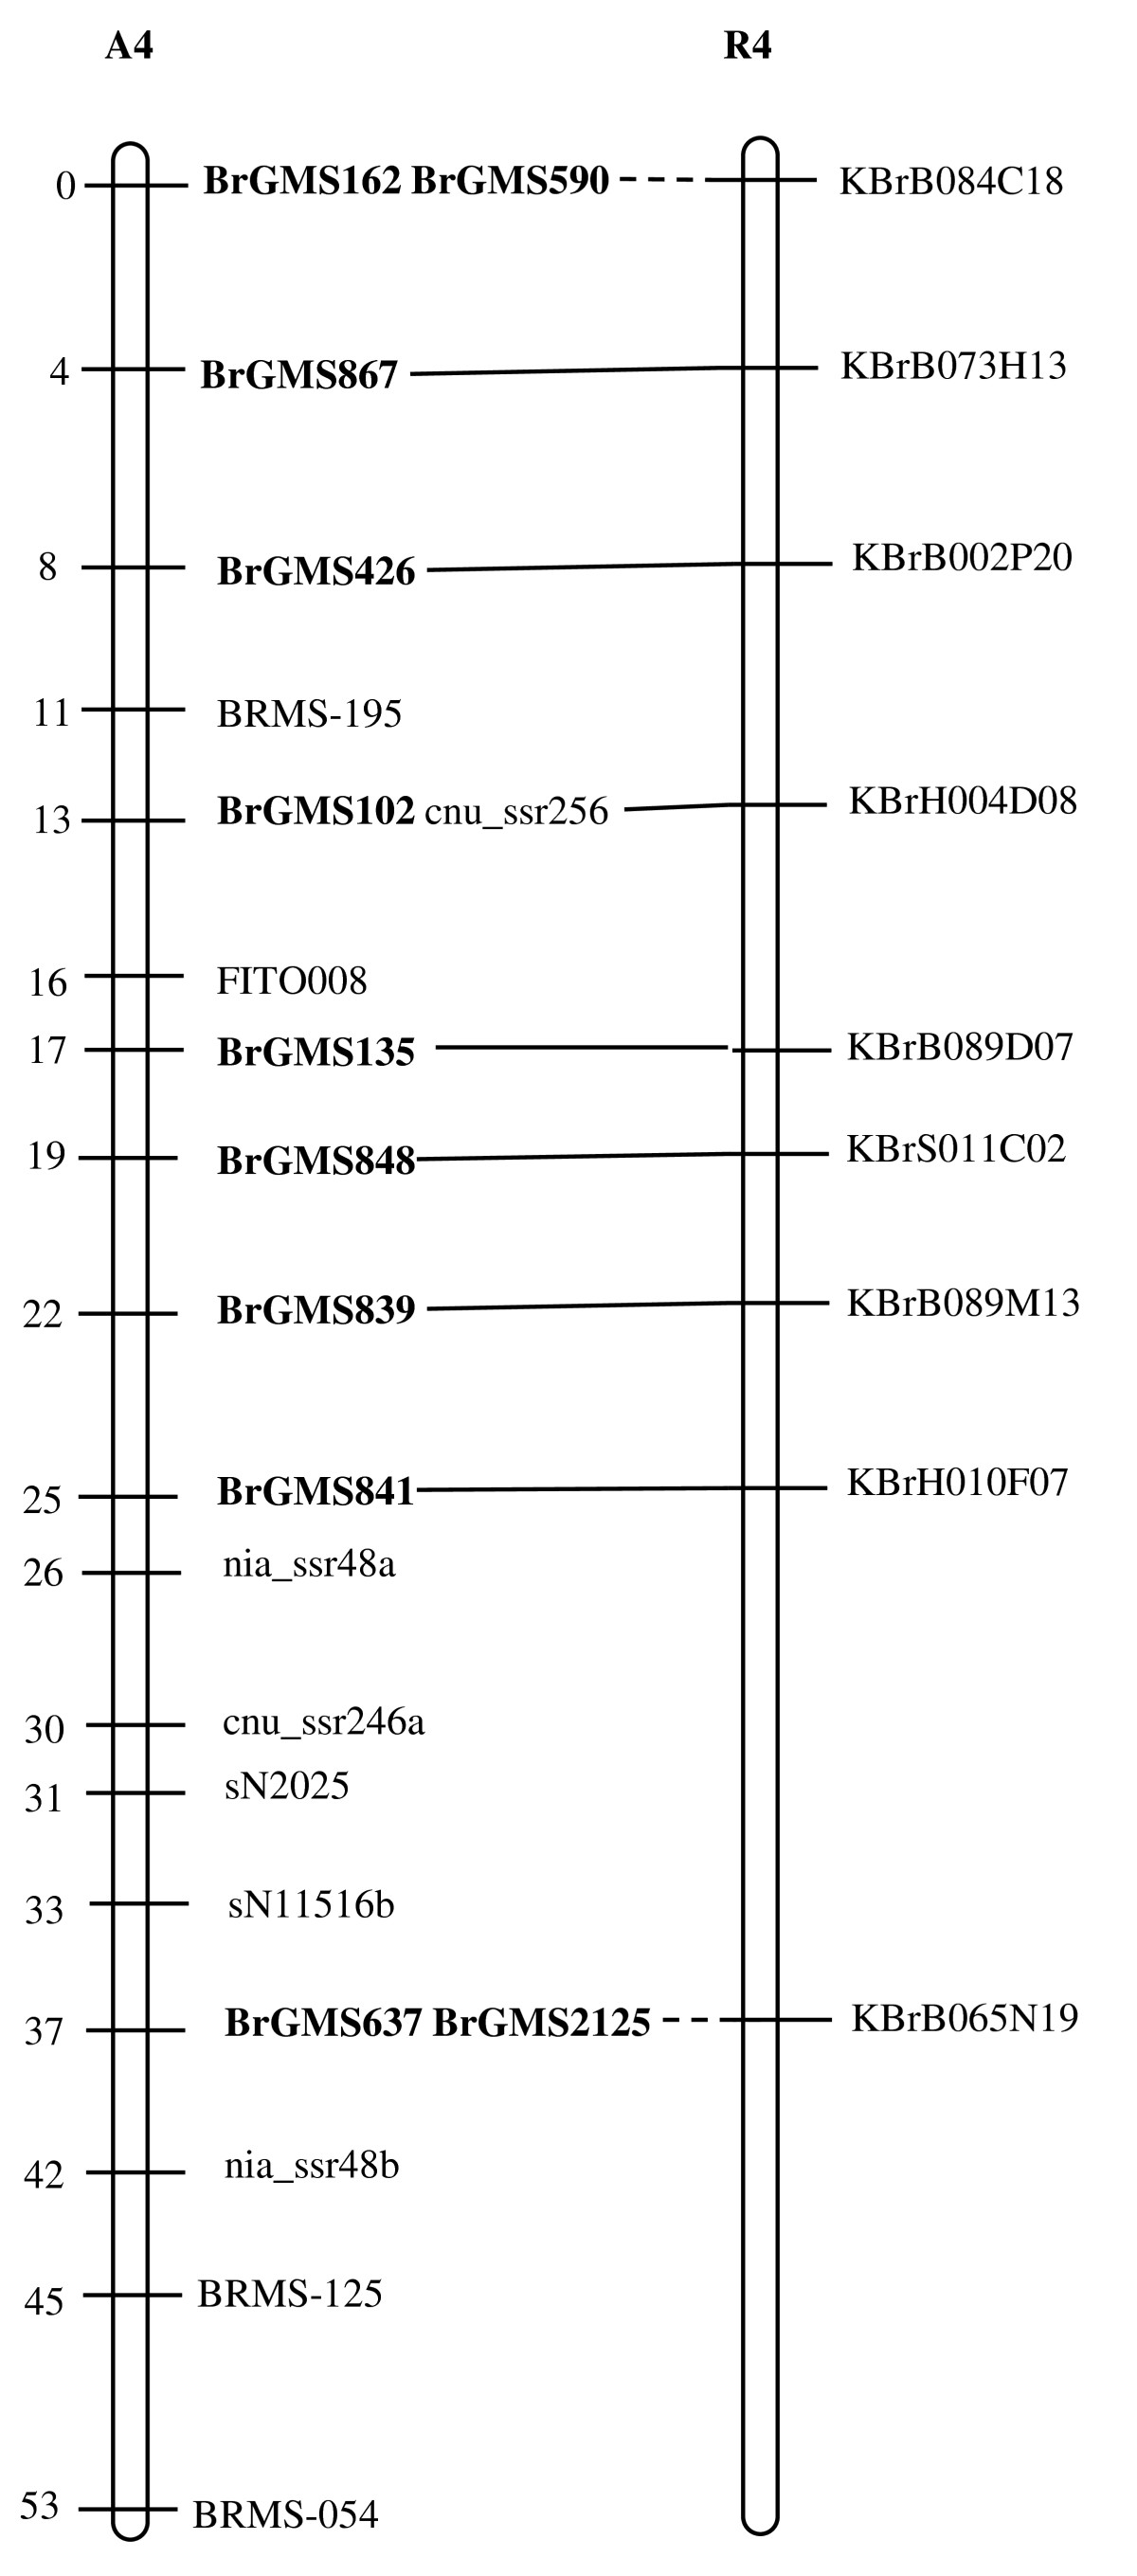 http://static-content.springer.com/image/art%3A10.1186%2F1471-2164-11-594/MediaObjects/12864_2010_Article_3291_Fig4_HTML.jpg